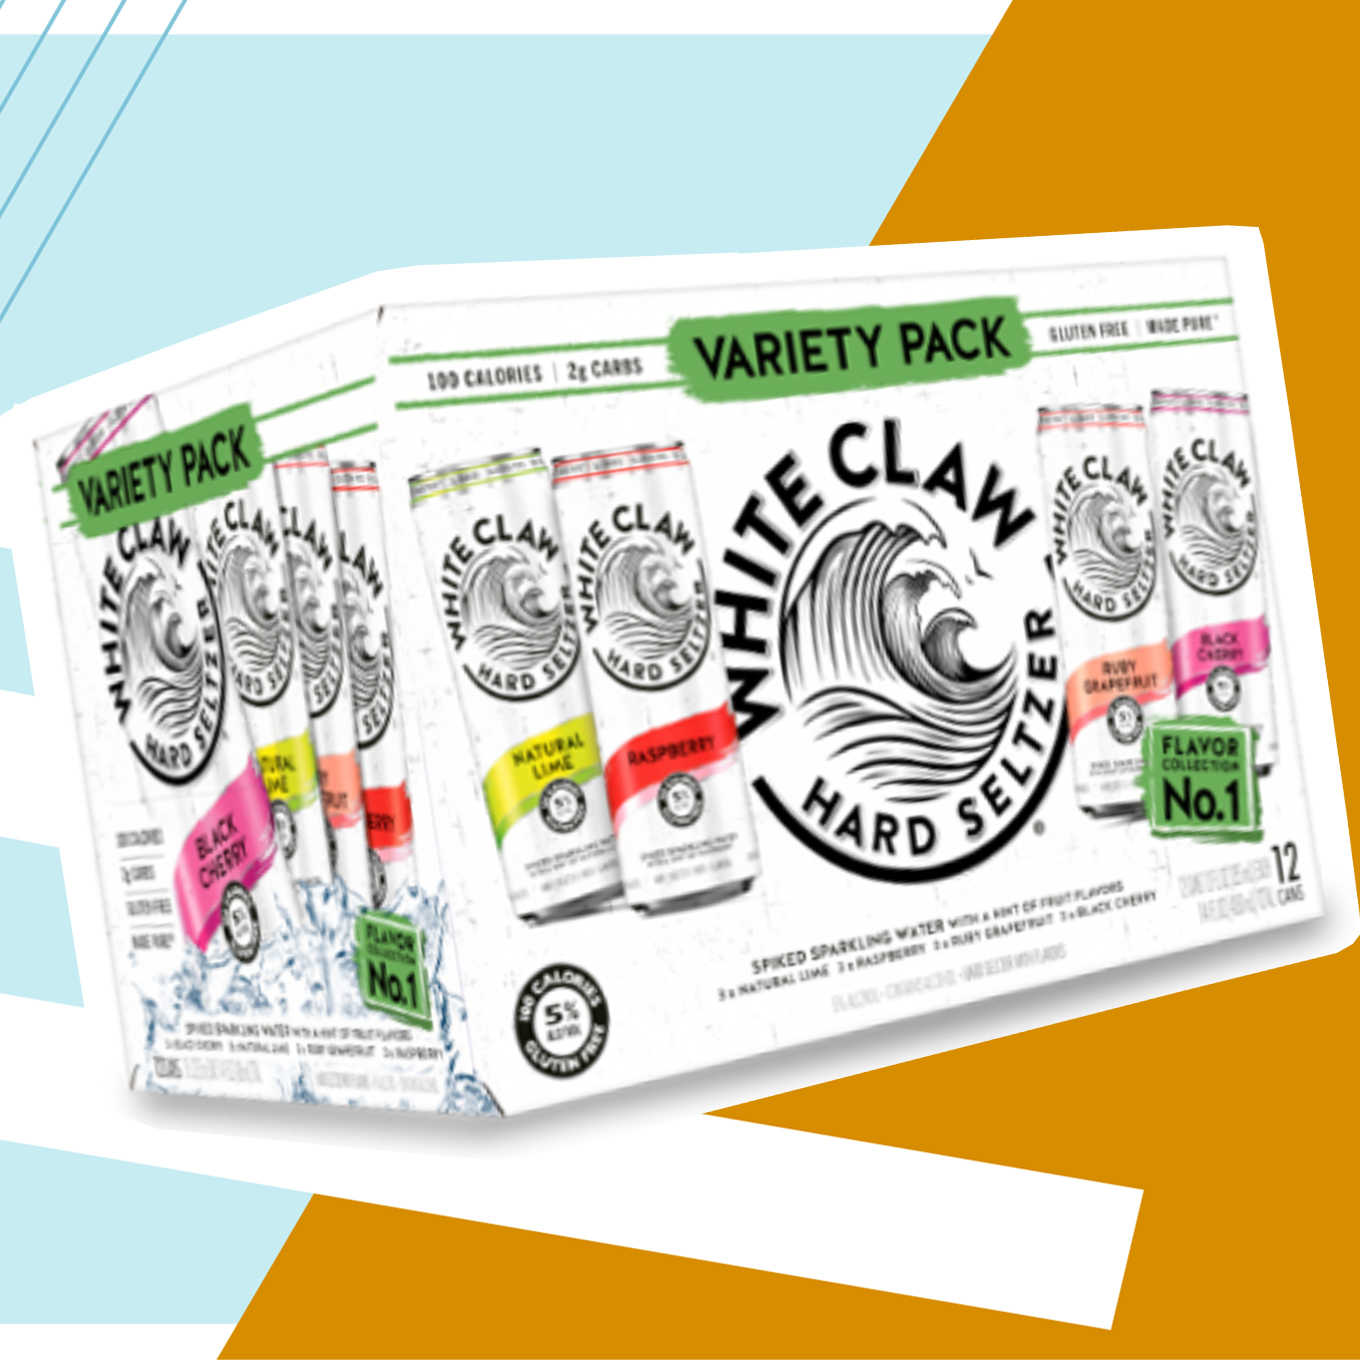 White Claw Hard Seltzer Variety Pack Flavor Collection No. 1